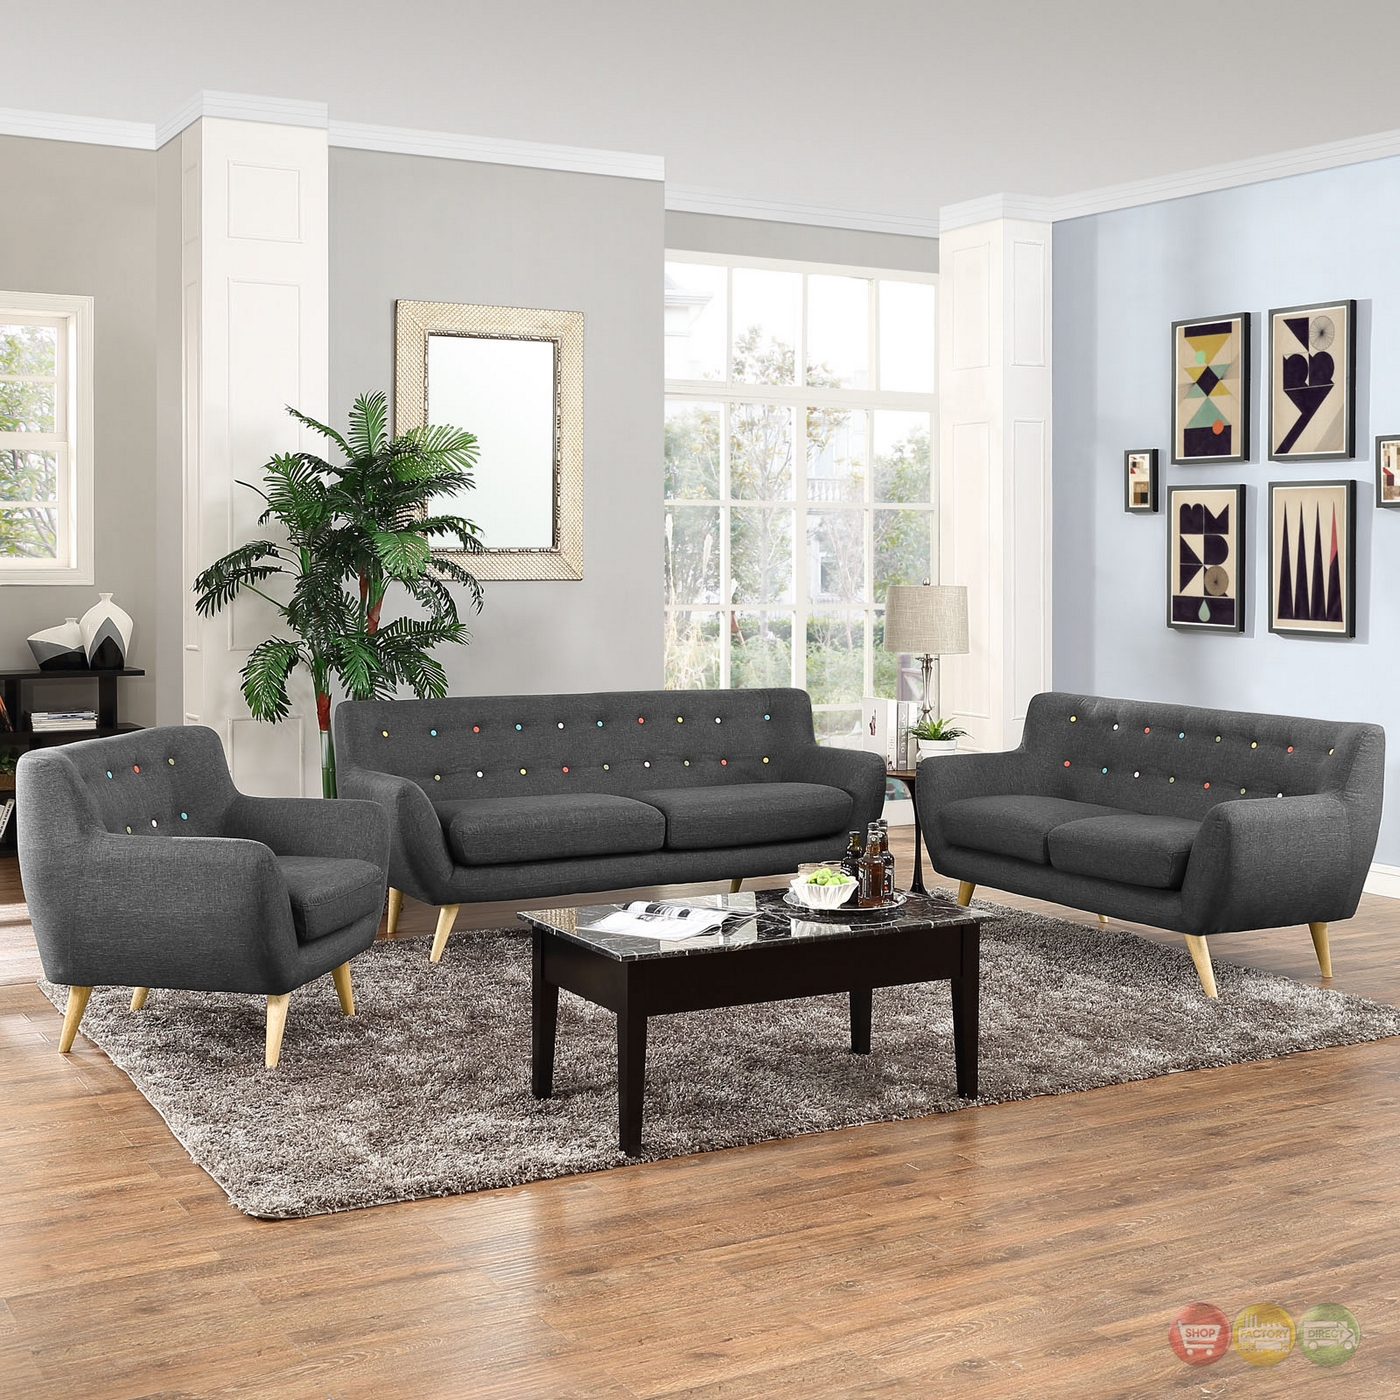 Mid-Century Modern Remark 3pc Button-Tufted Living Room